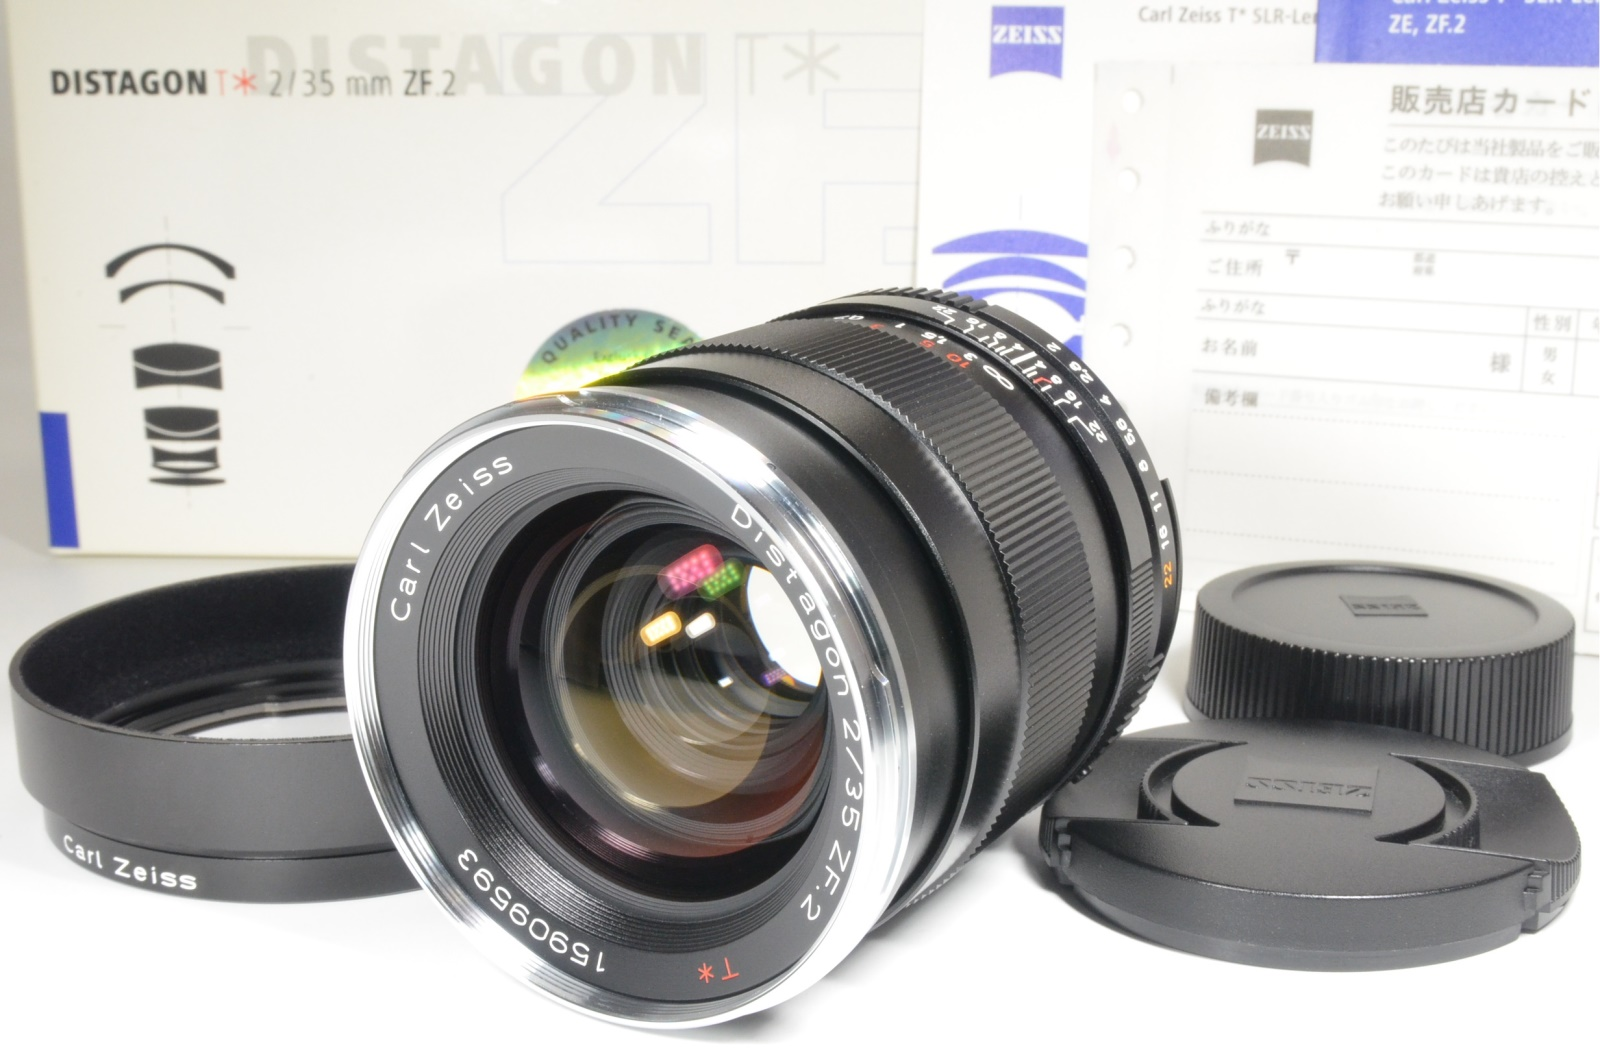 carl zeiss distagon t* 35mm f2 zf.2 lens for nikon in boxed from japan